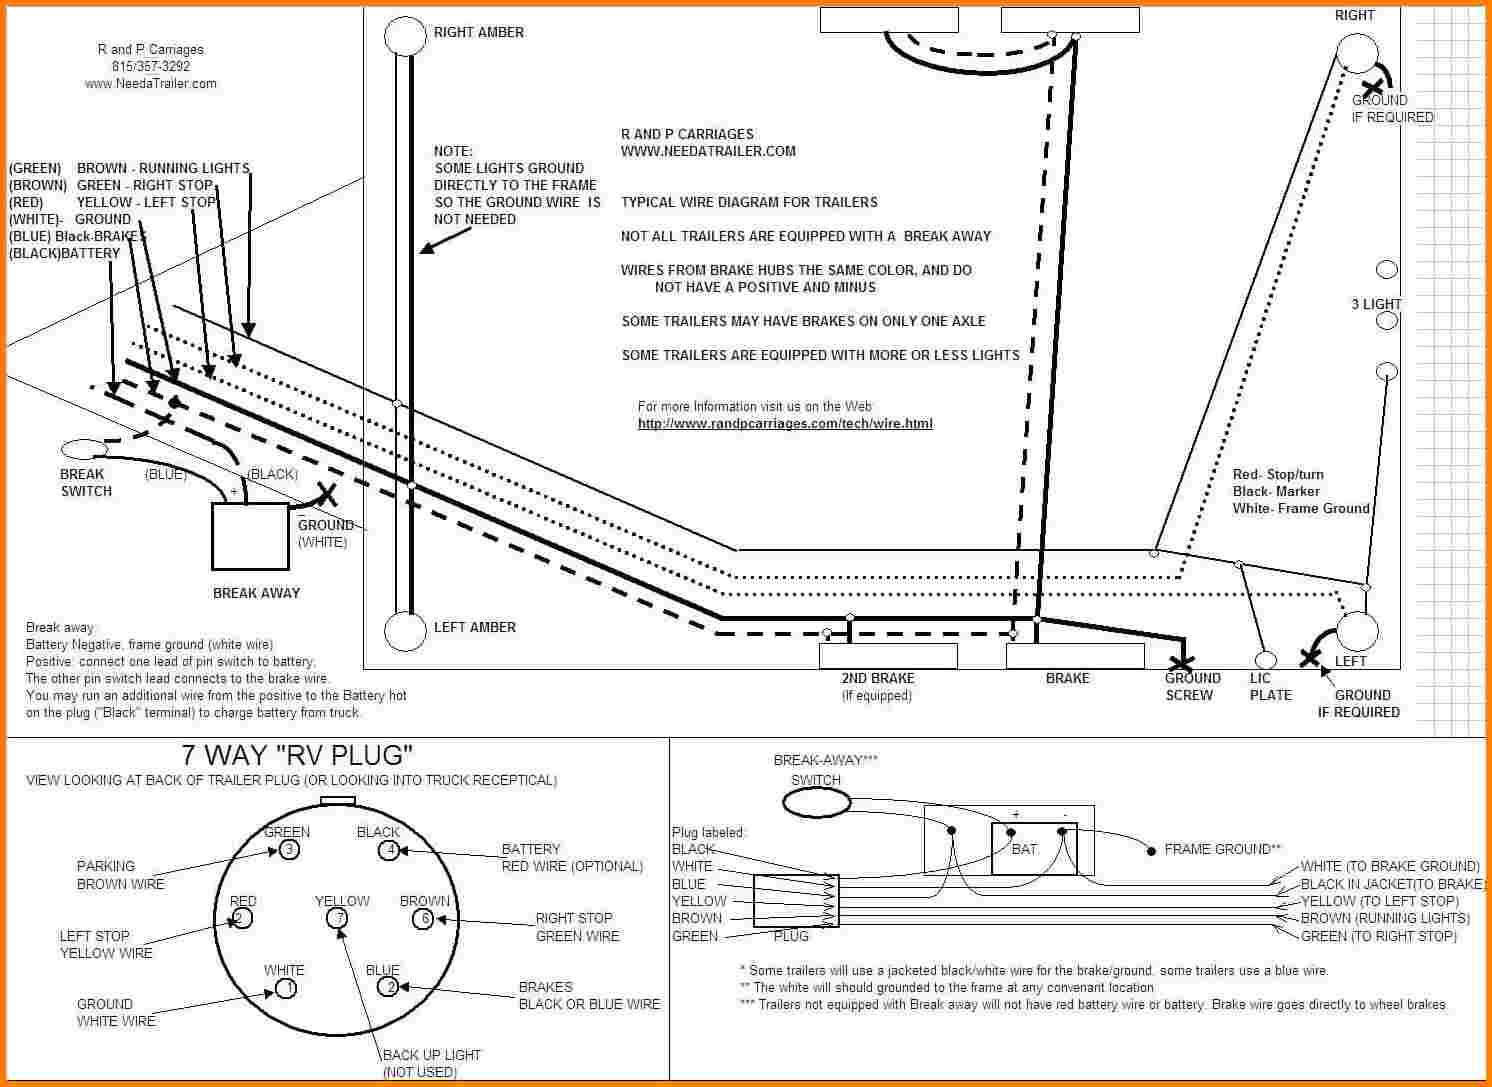 Electric Trailer Brakes Wiring Diagram Wiring Diagram New - Wiring Electric Trailer Brakes Diagram